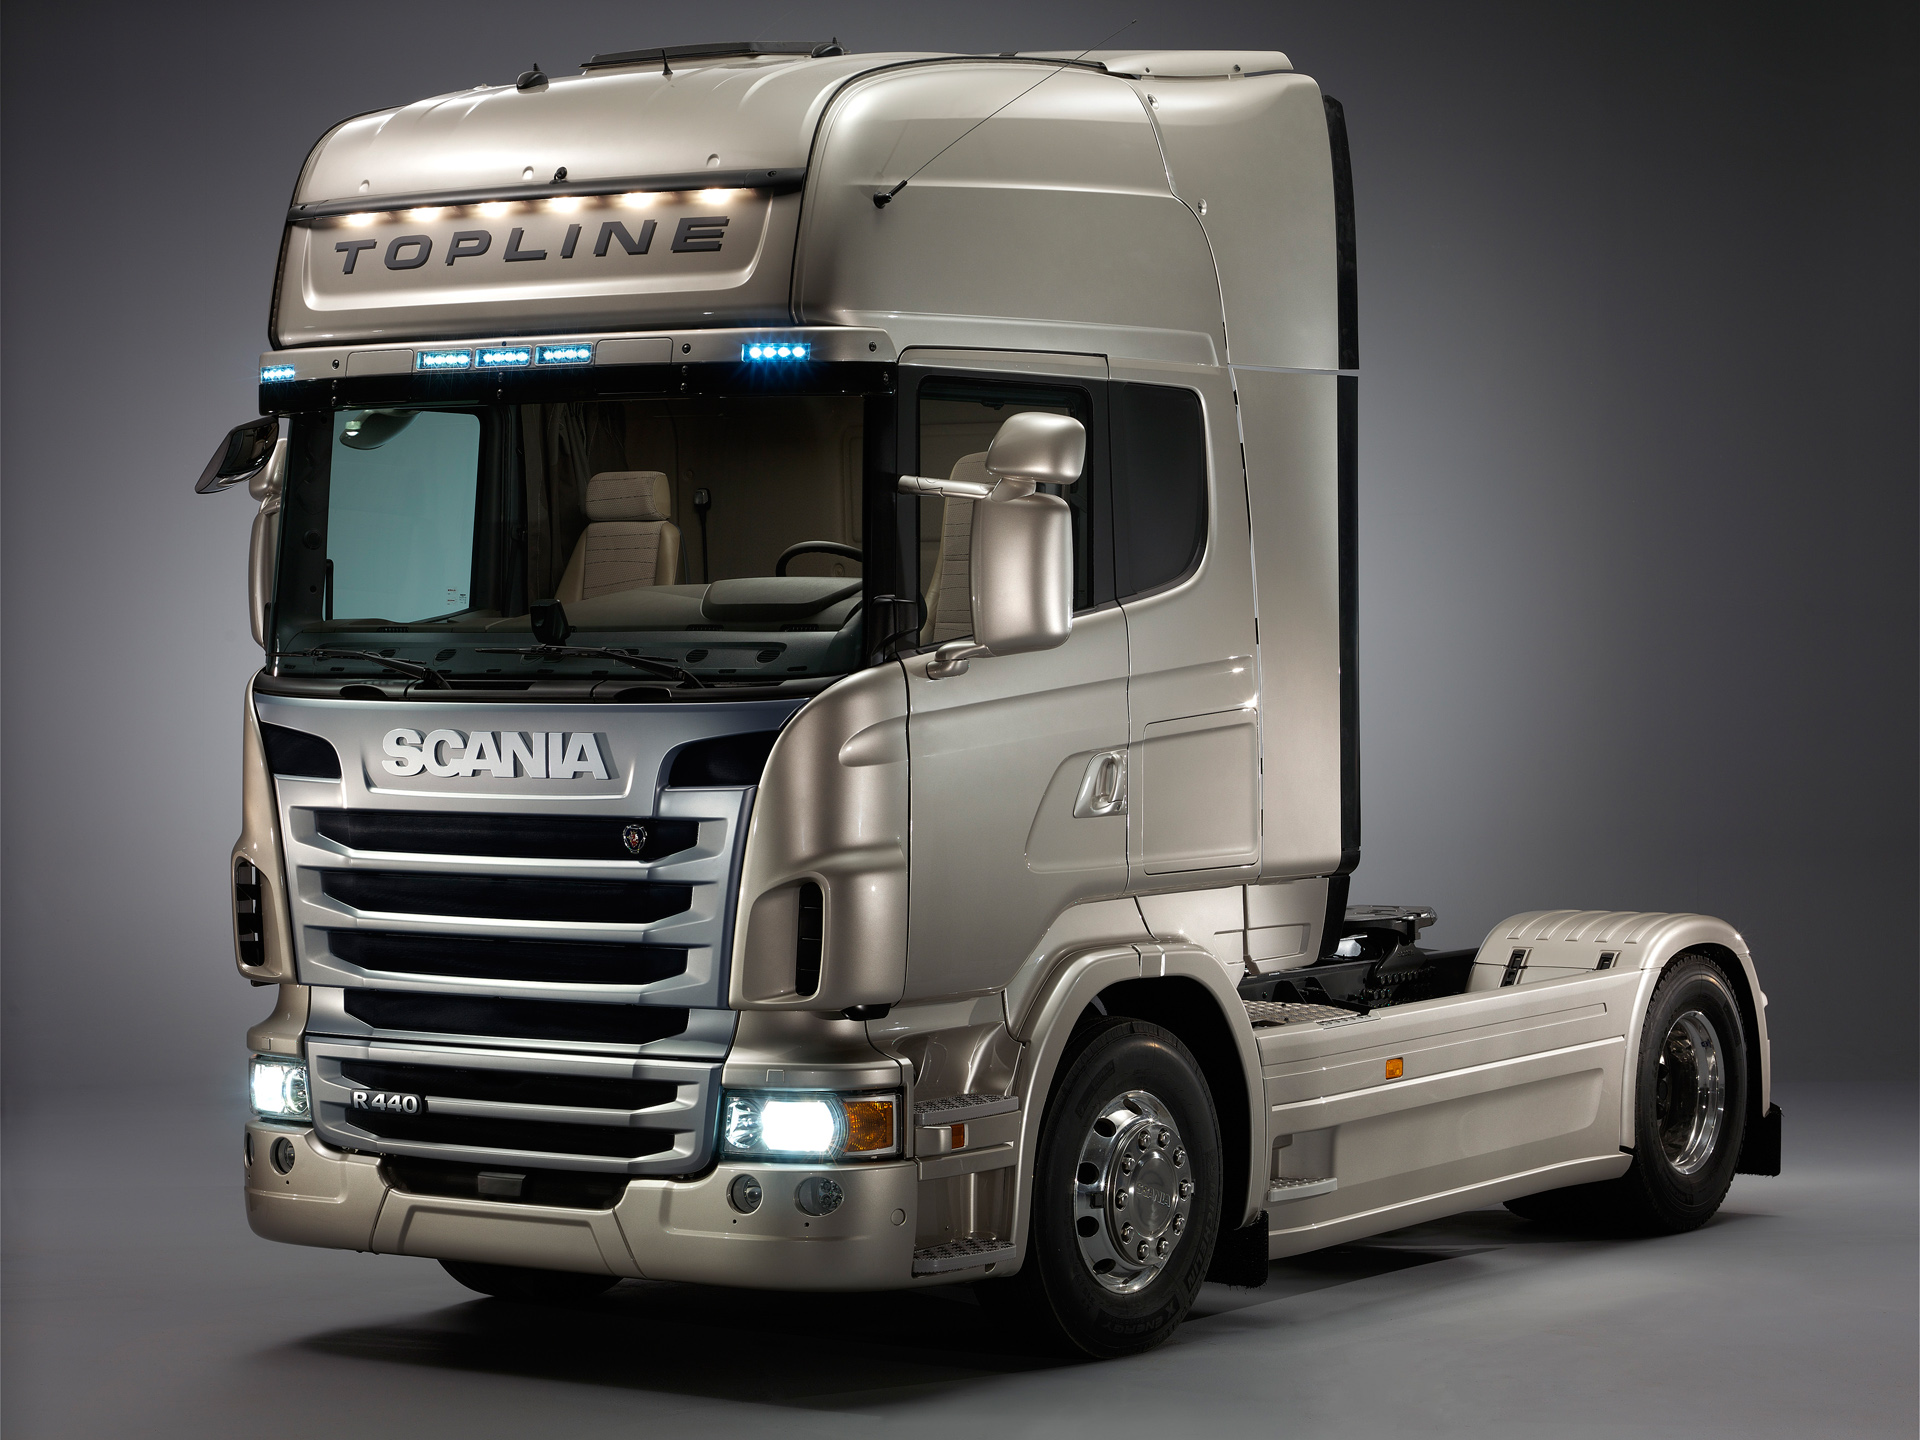 Scania r-series photo - 1